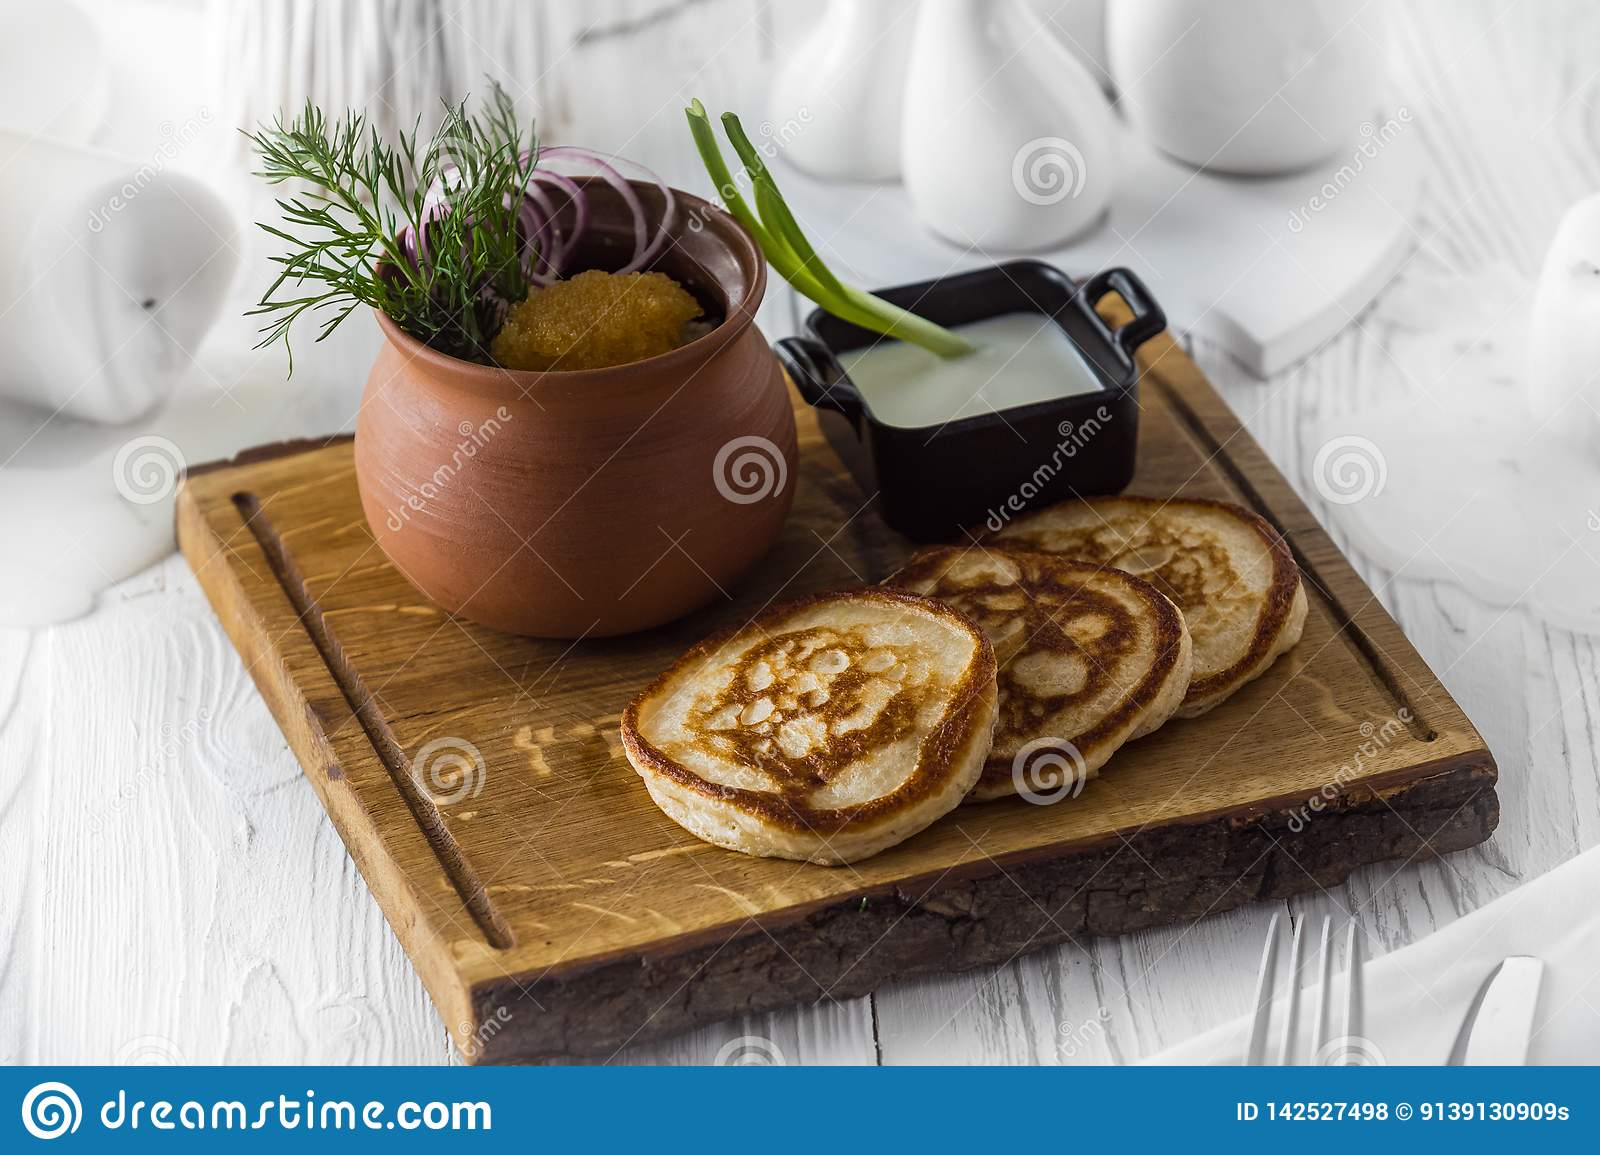 Pancakes with vegetables and dip sauce on a board